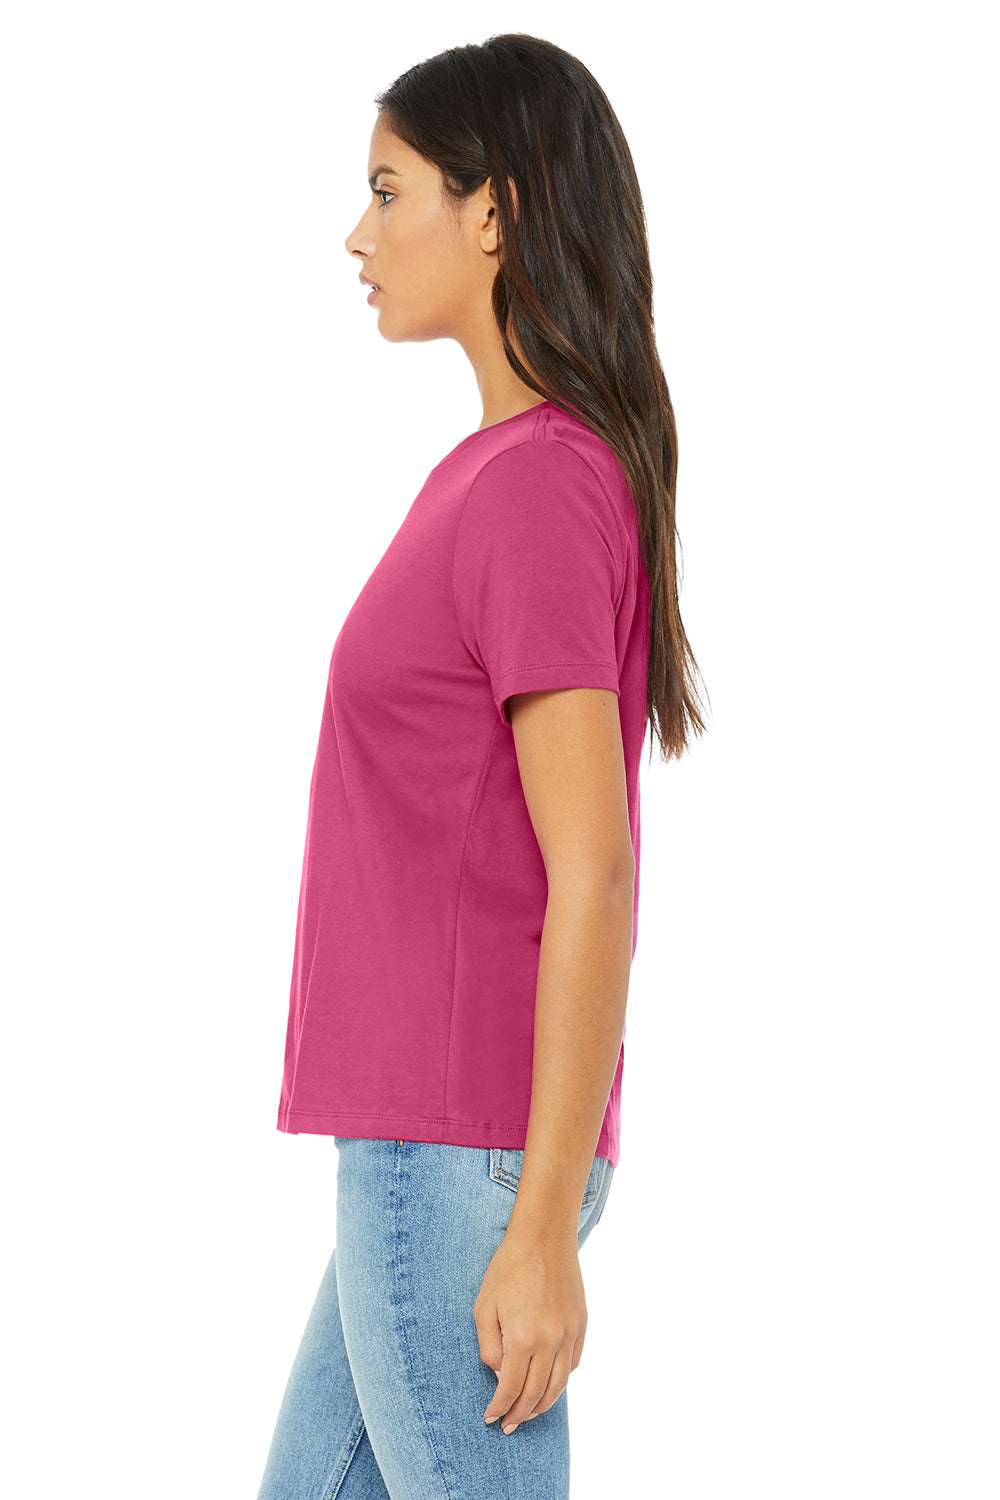 Bella + Canvas B6400 Womens Relaxed Jersey Short Sleeve Crewneck T-Shirt Berry Pink Side